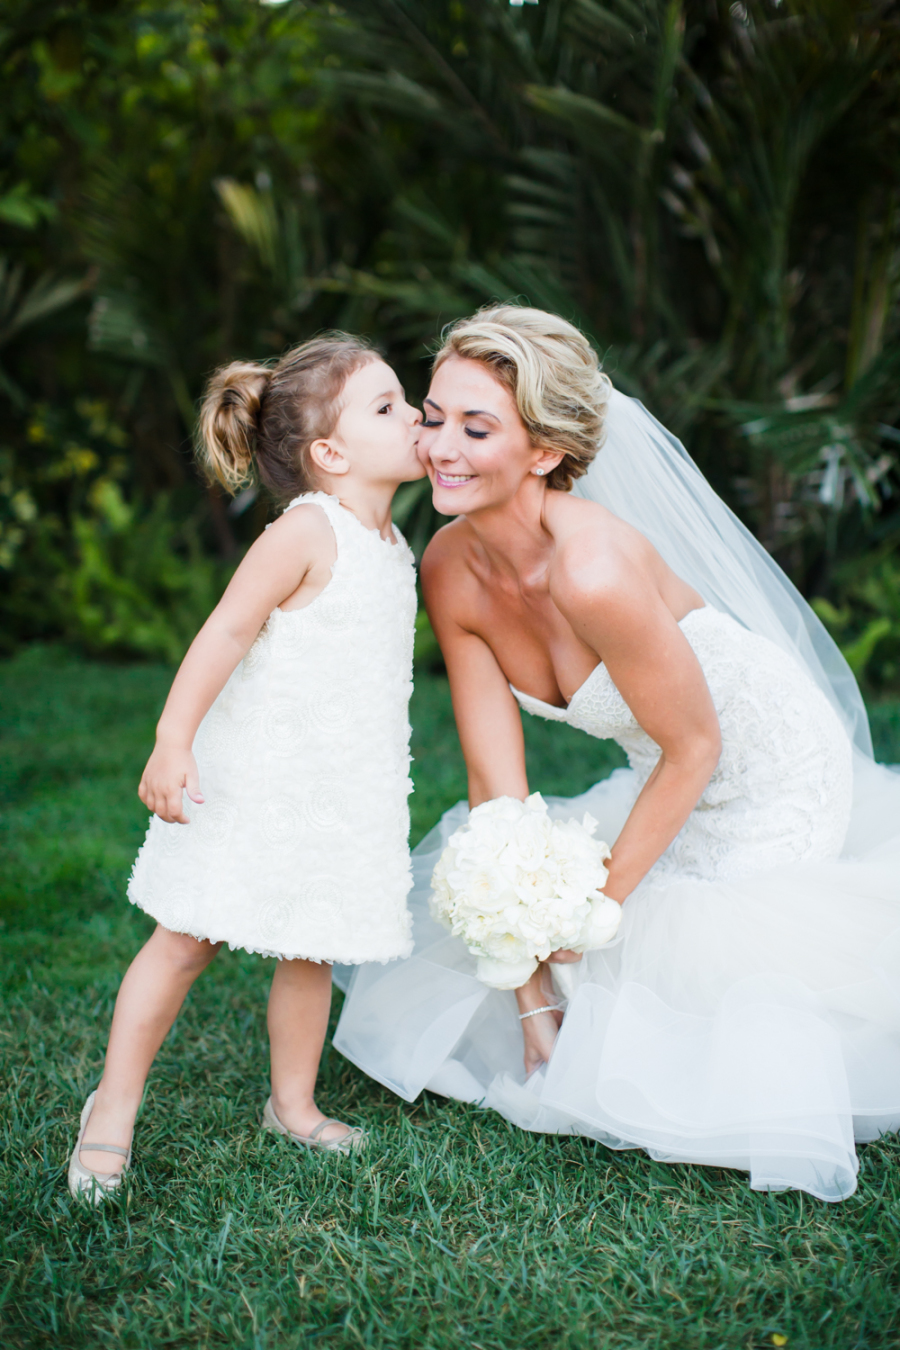 www.santabarbarawedding.com | Ann Johnson Events | Jessica Lewis | The Biltmore | Flower Girl and Bride